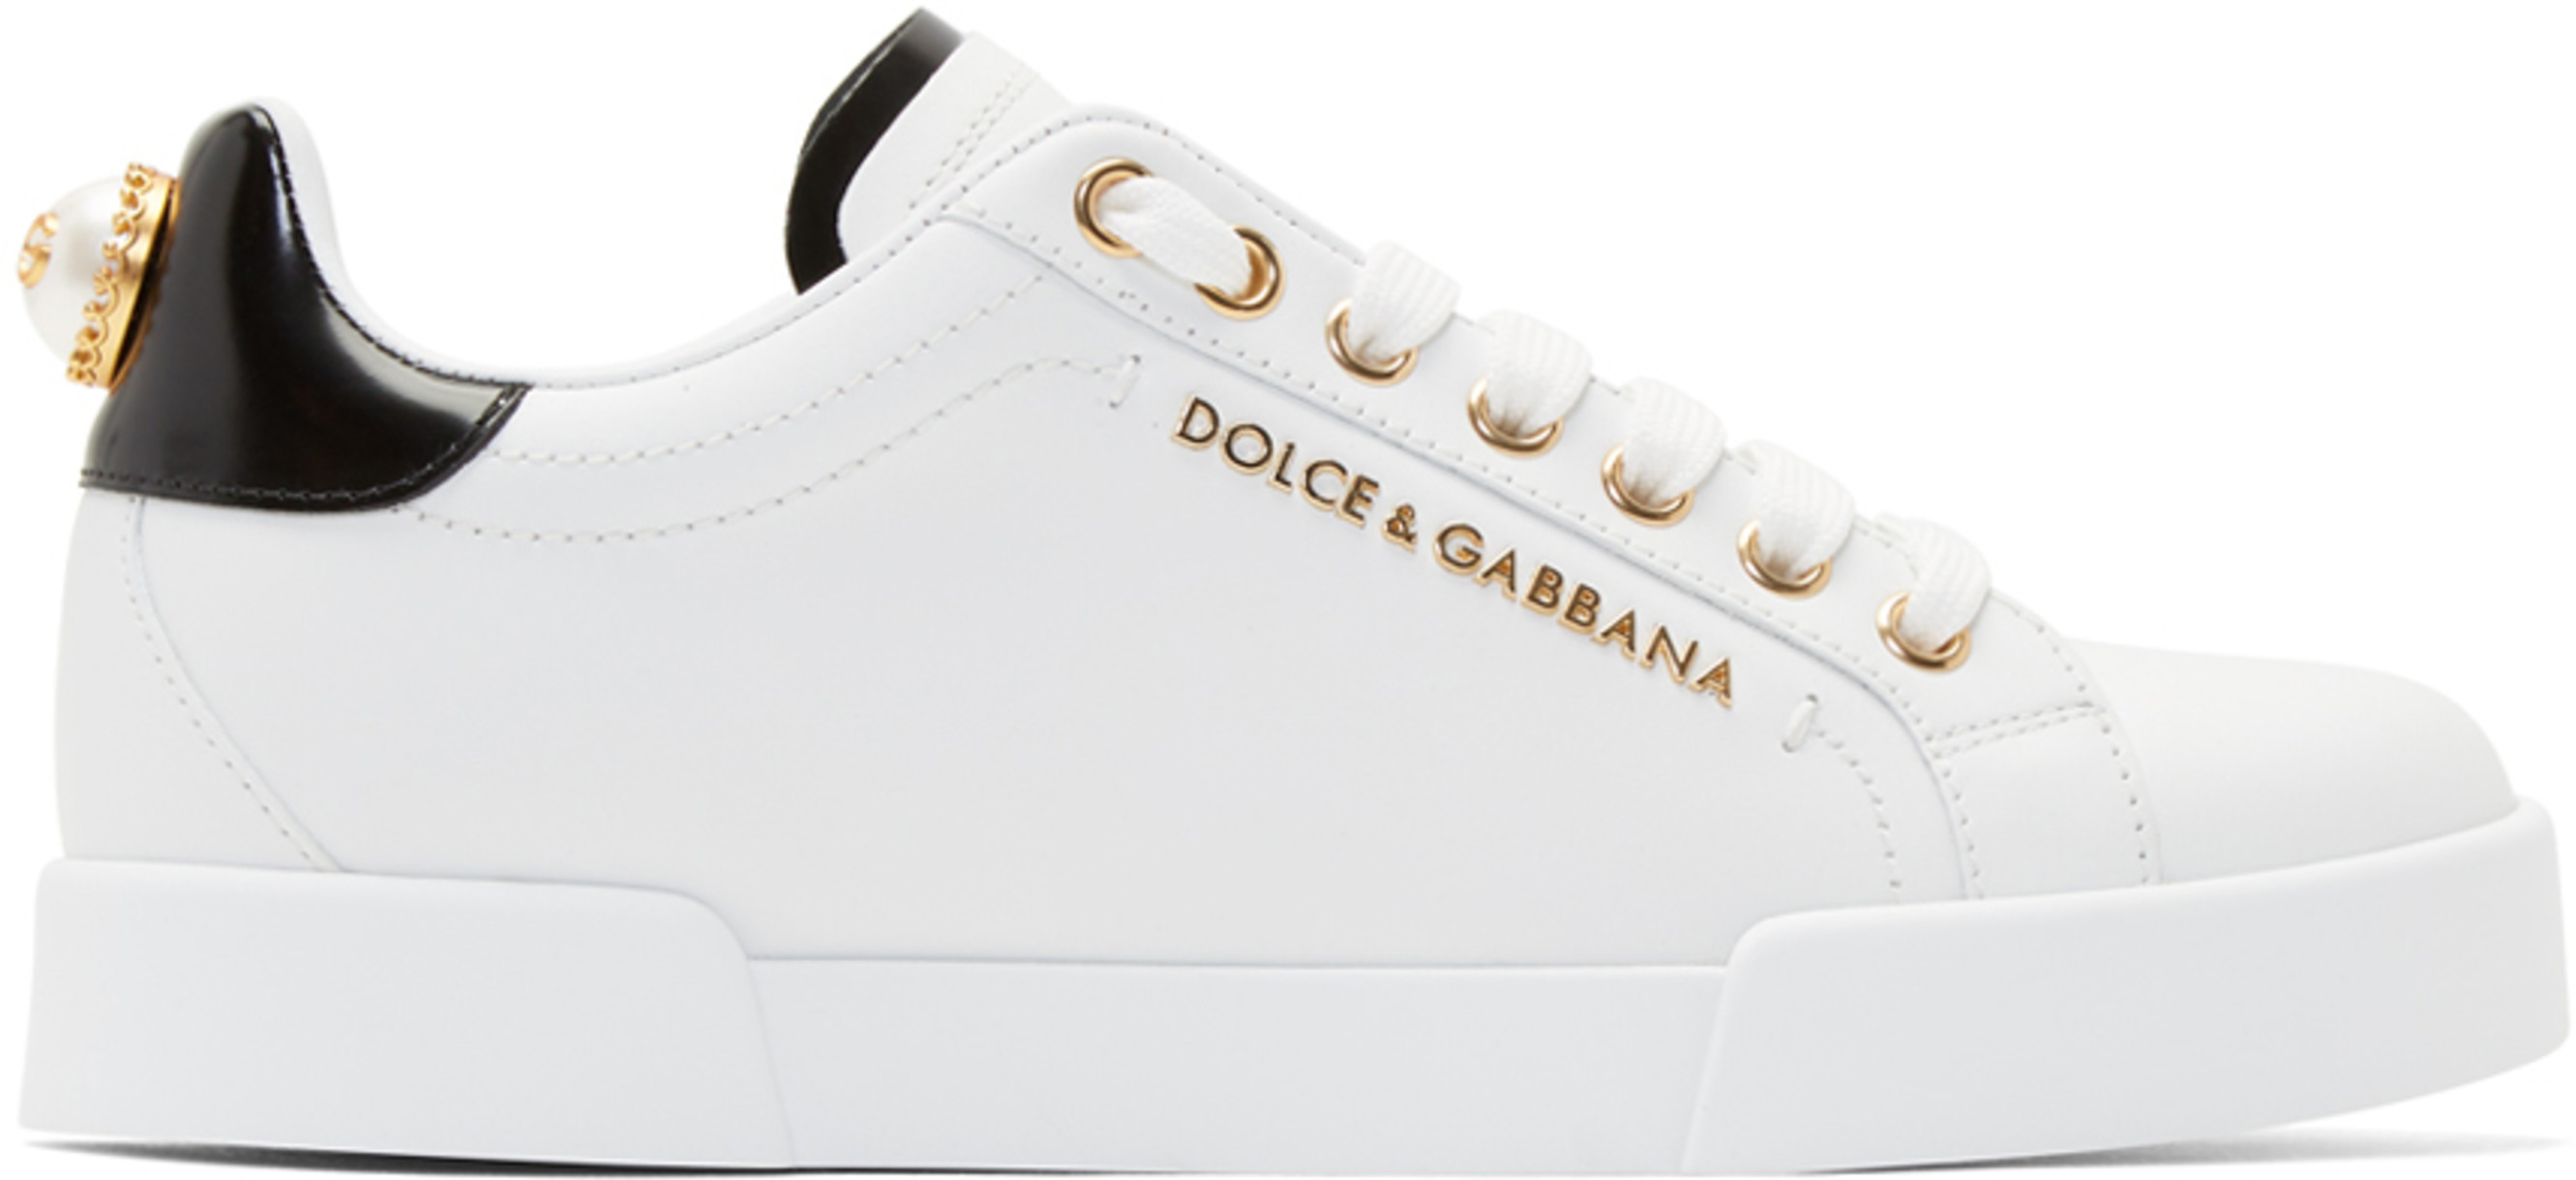 7e40323e14 Dolce & Gabbana for Women SS19 Collection | SSENSE